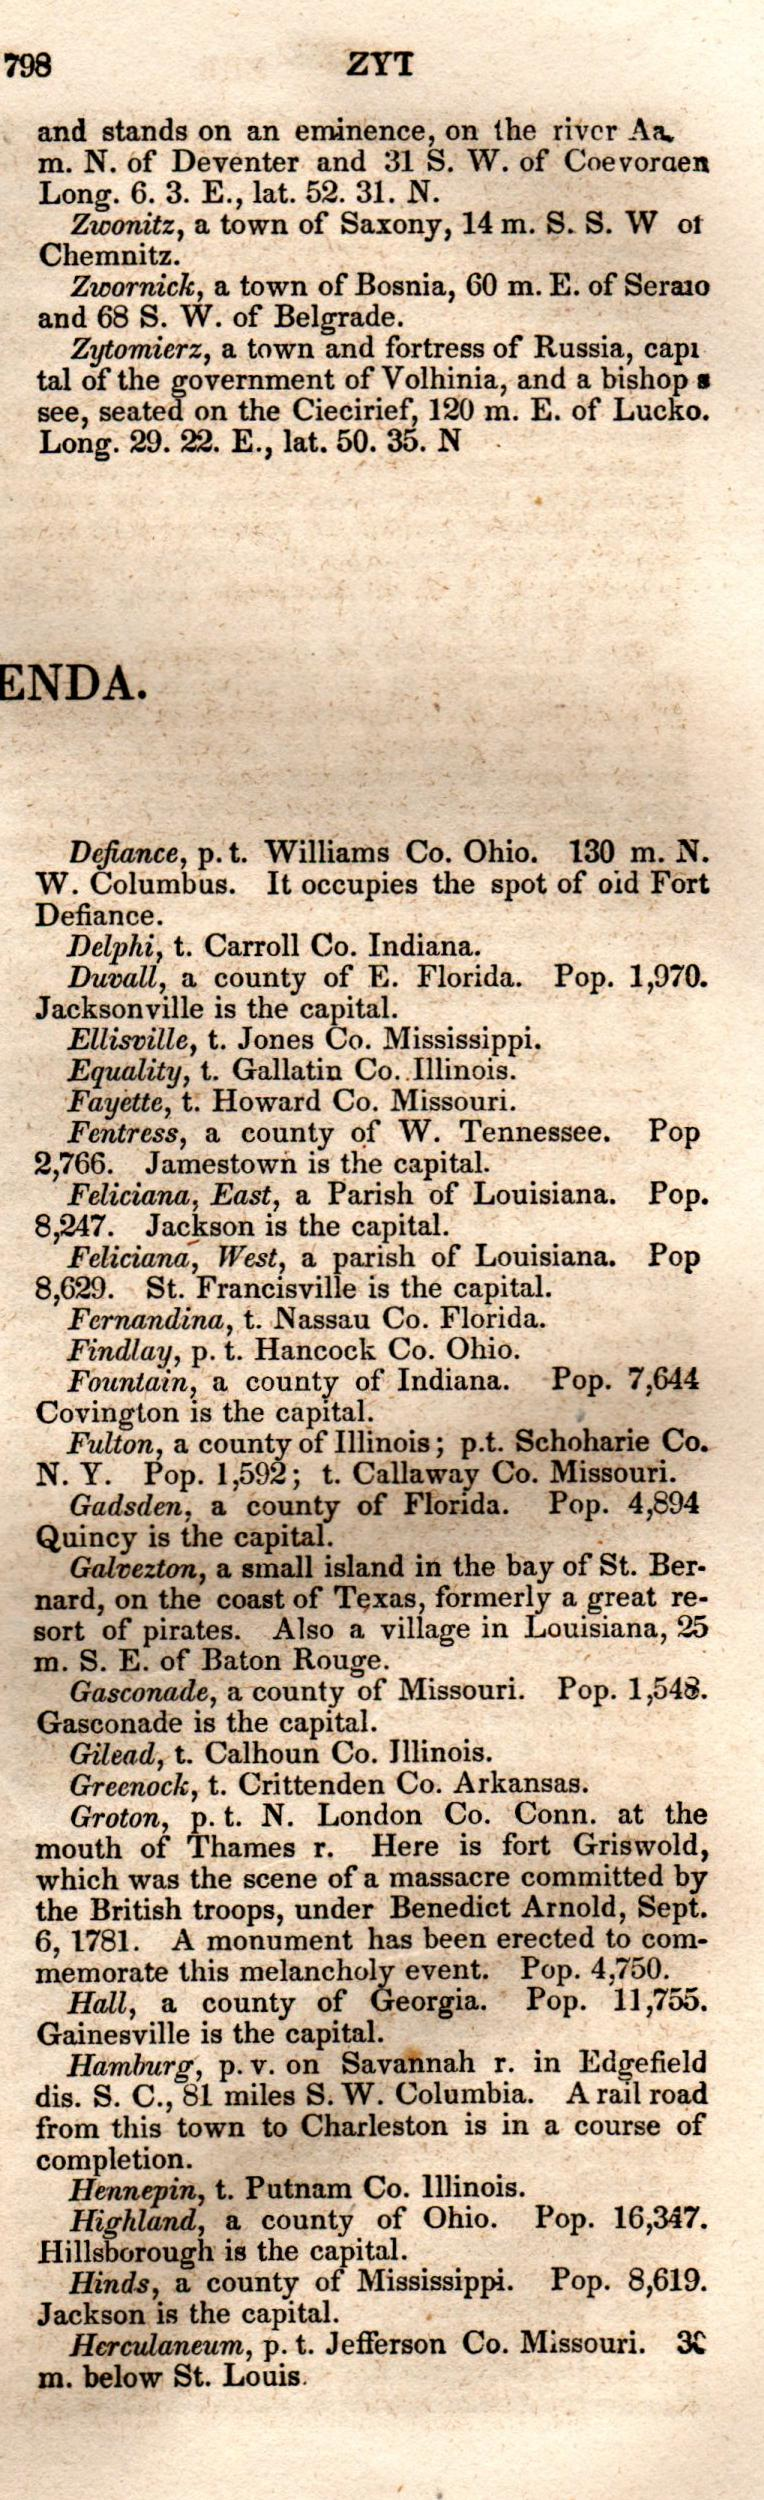 Brookes' Universal Gazetteer (1850), Page  798  Right Column